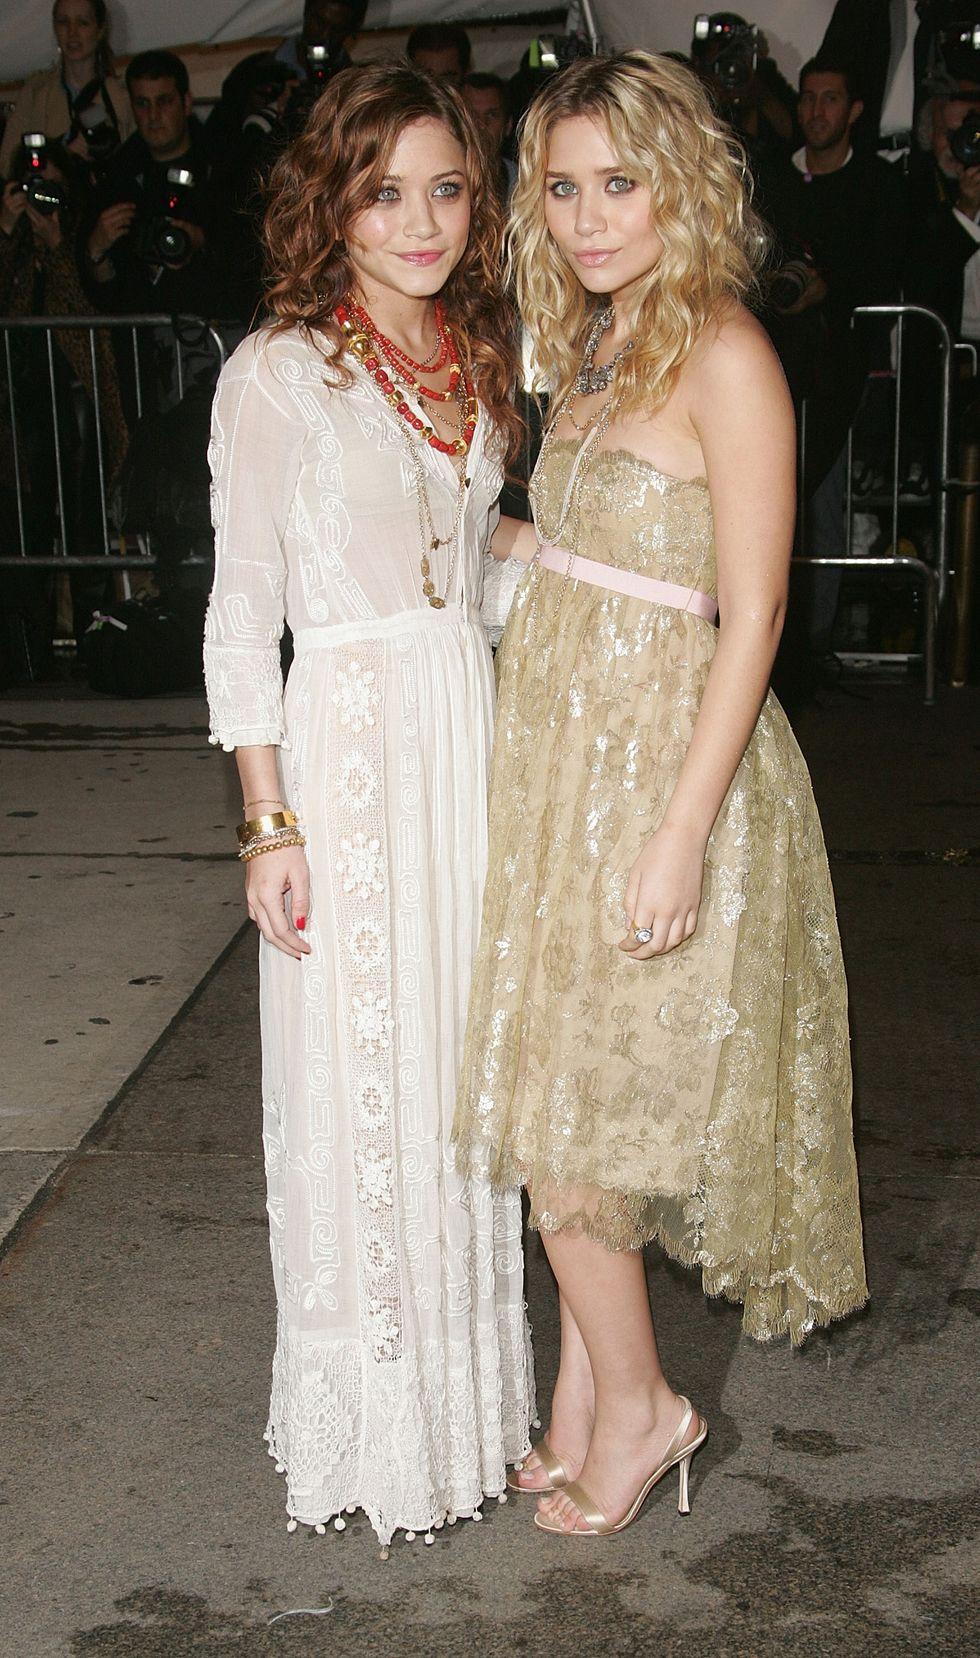 May 02, 2005 For their first Met Gala, the twins attended the event wearing delicate lace dresses. Ashley wore a golden Oscar de la Renta dress, while Mary-Kate chose a vintage piece.